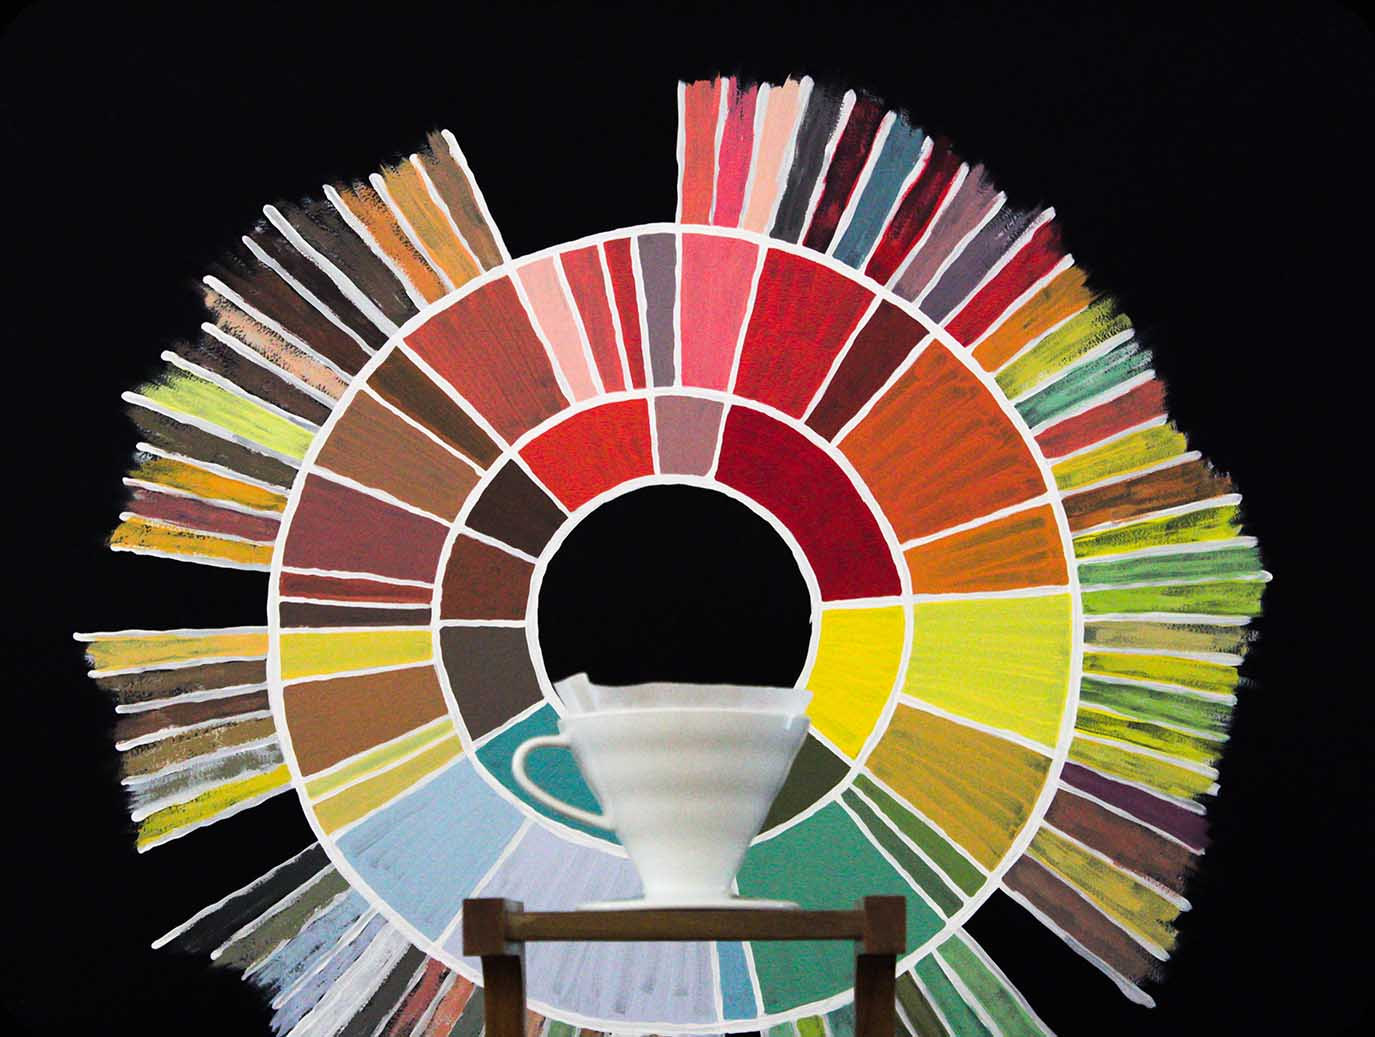 Pour over brewer displays beautifully in front of flavor wheel